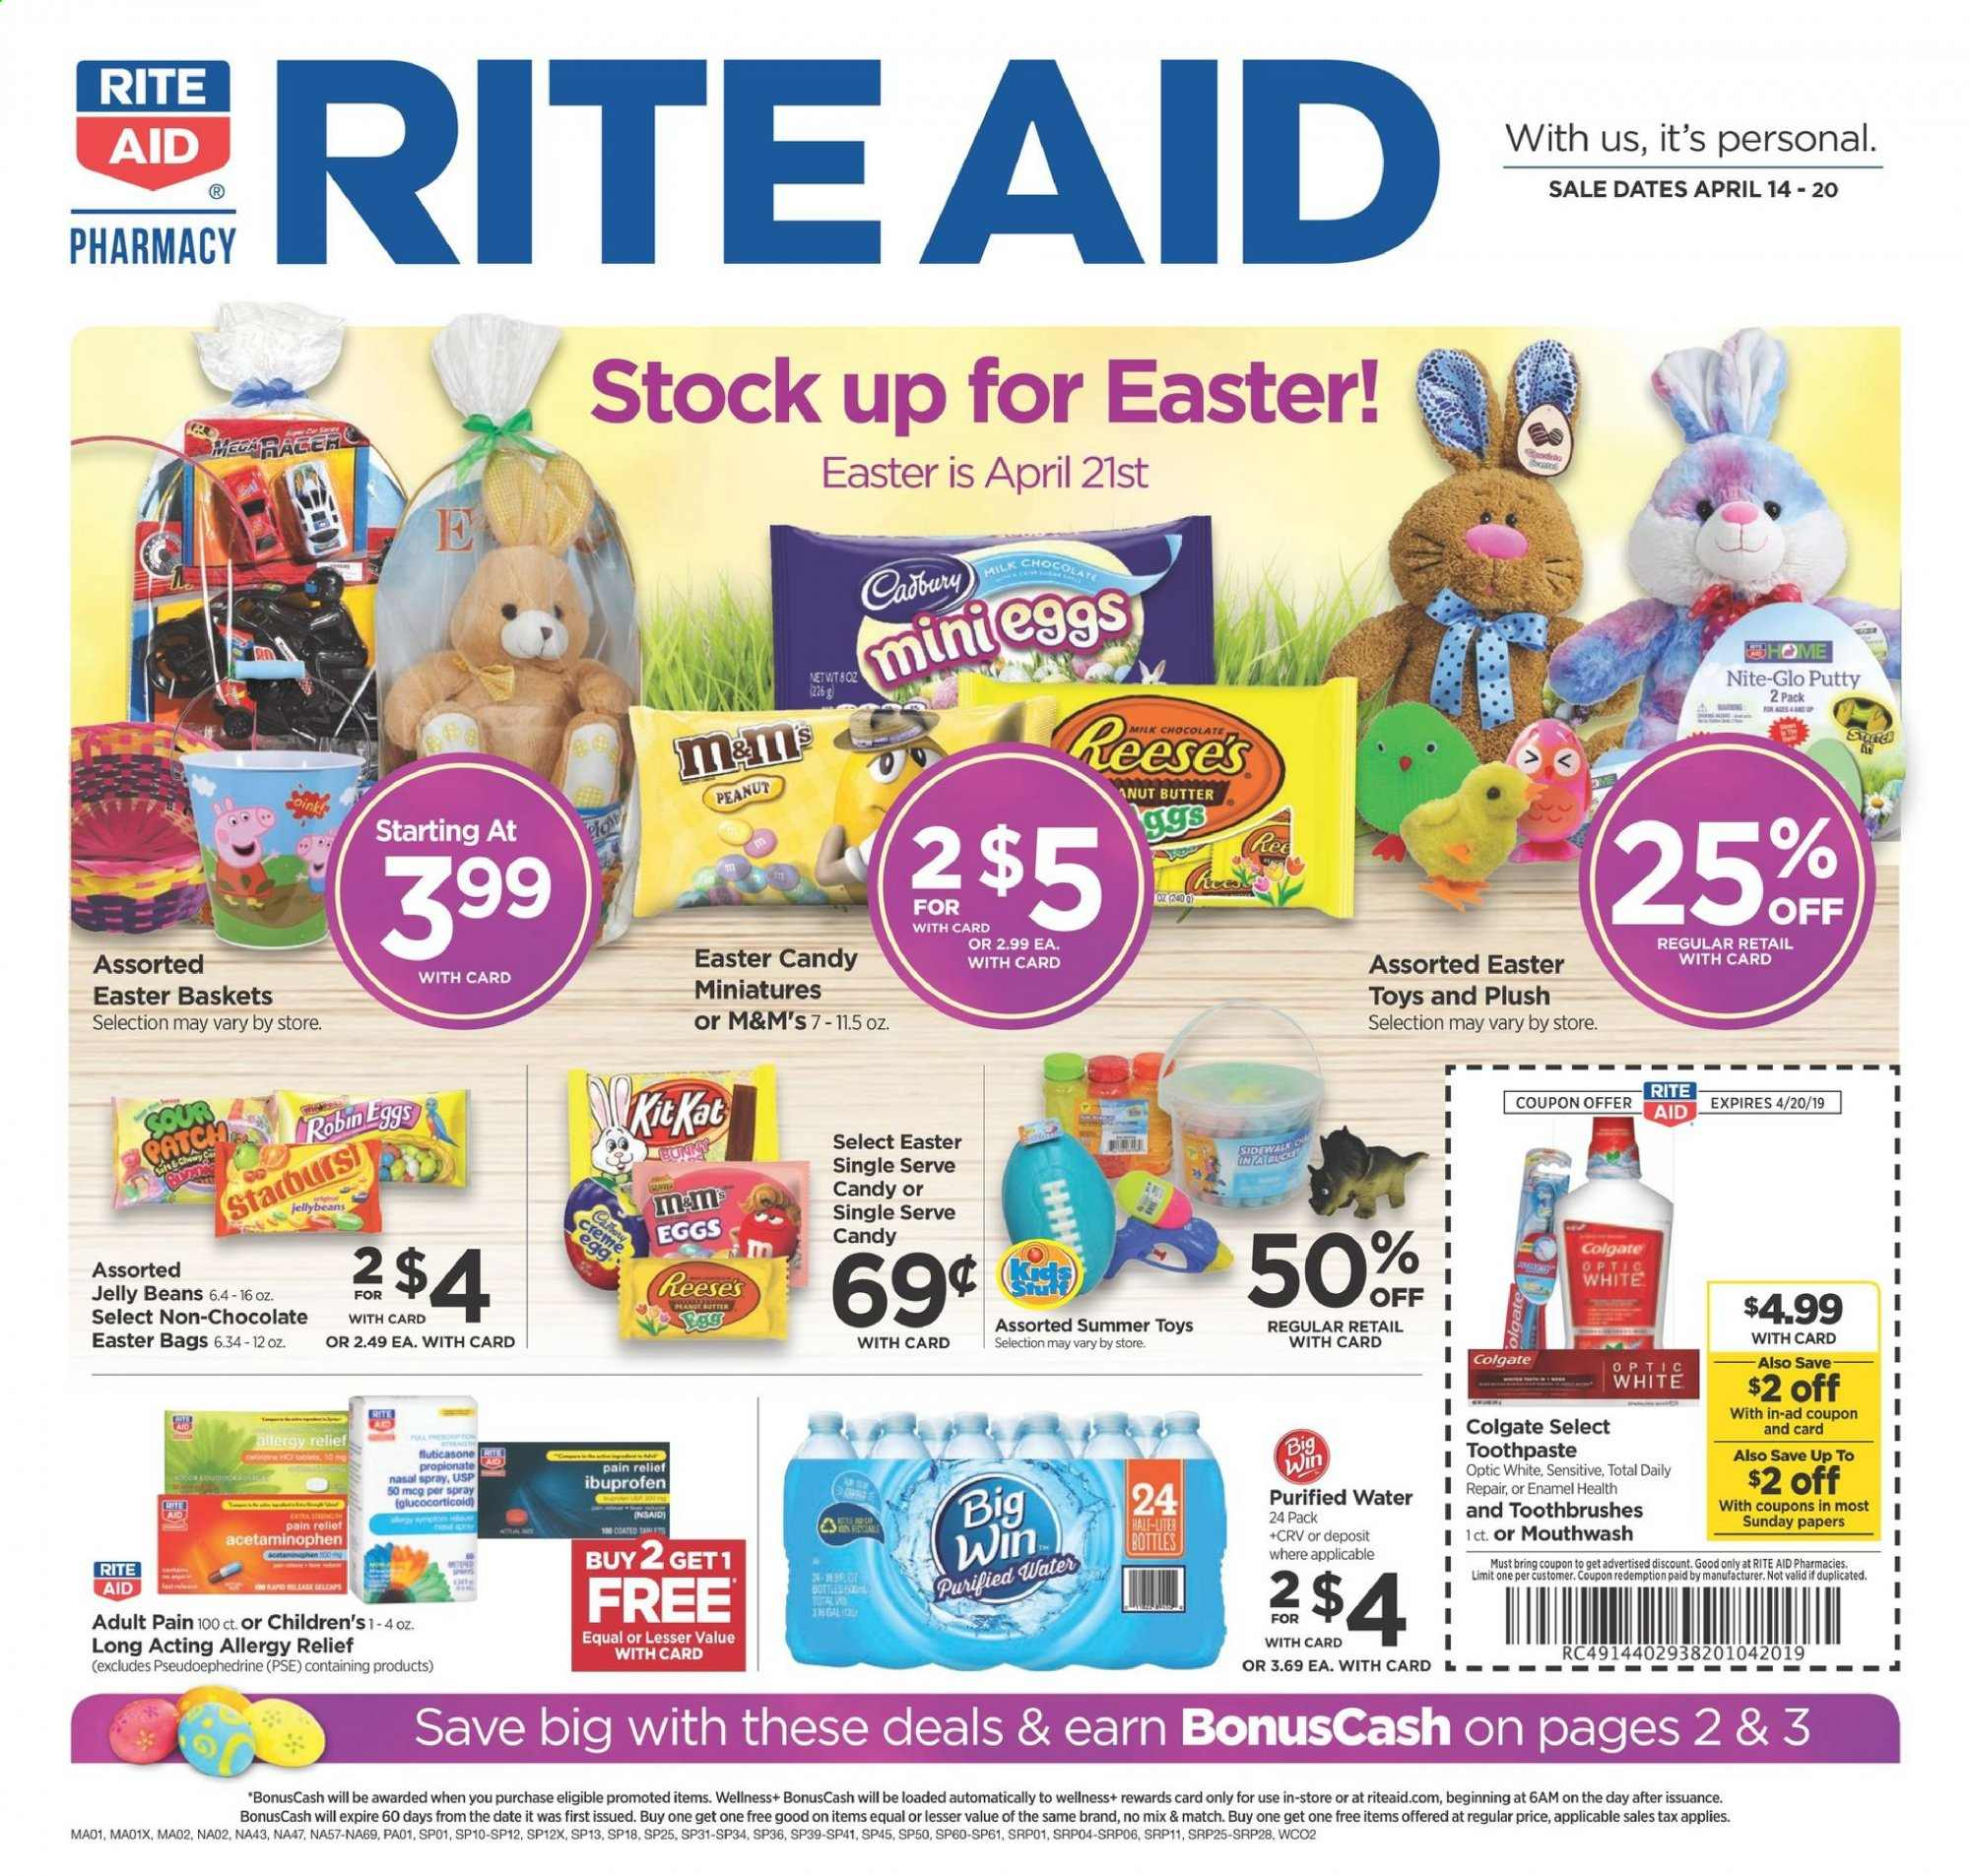 RITE AID Flyer - 04.14.2019 - 04.20.2019 - Sales products - bag, basket, beans, butter, dates, eggs, colgate, milk chocolate, repair, spray, ibuprofen, pain relief, chocolate, toys, candy, toothpaste, mouthwash, jelly, purified water, easter, m&m's. Page 1.